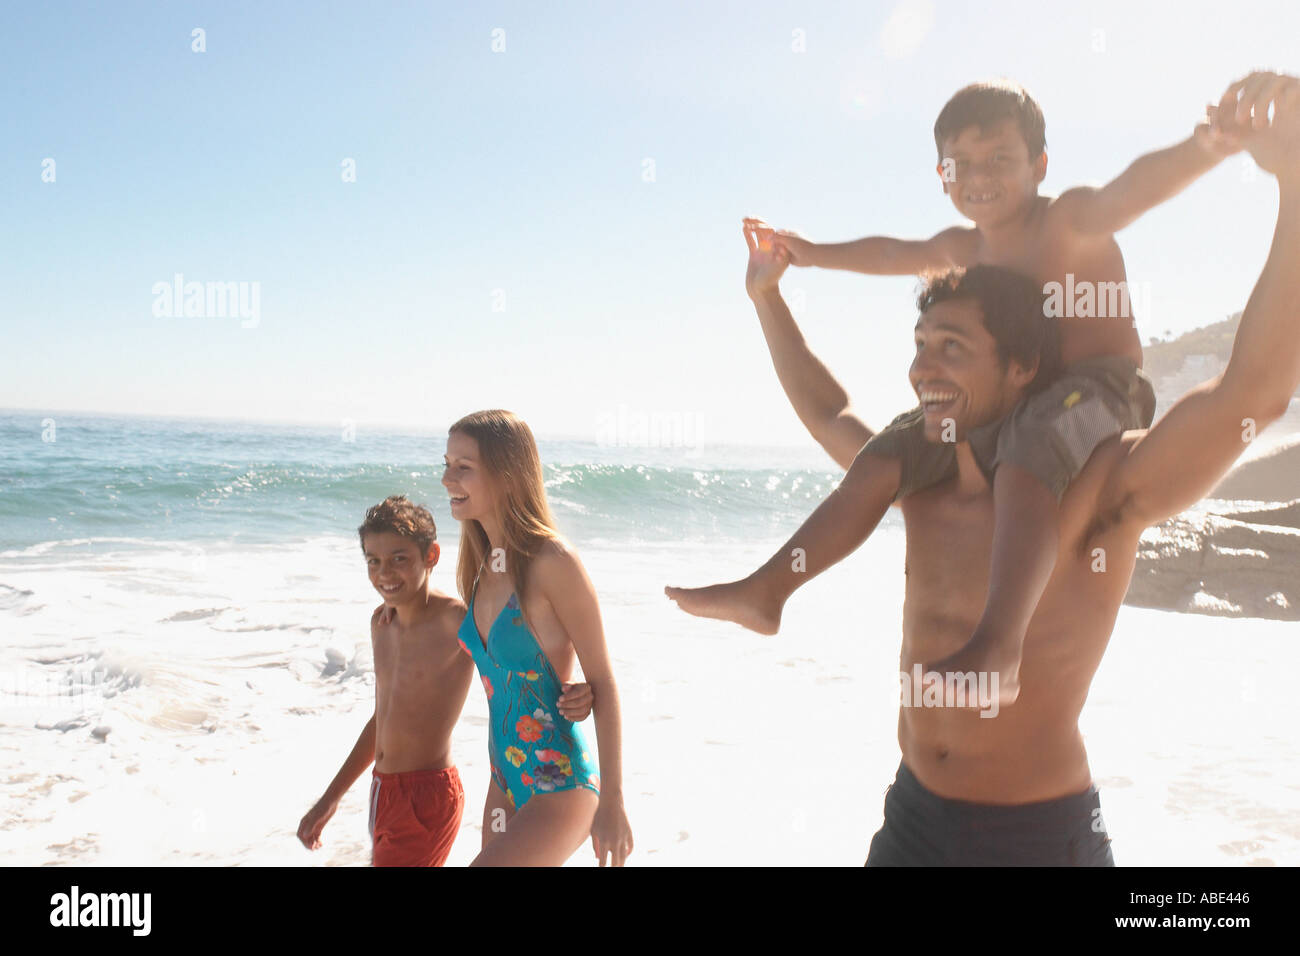 Family on summer holiday - Stock Image